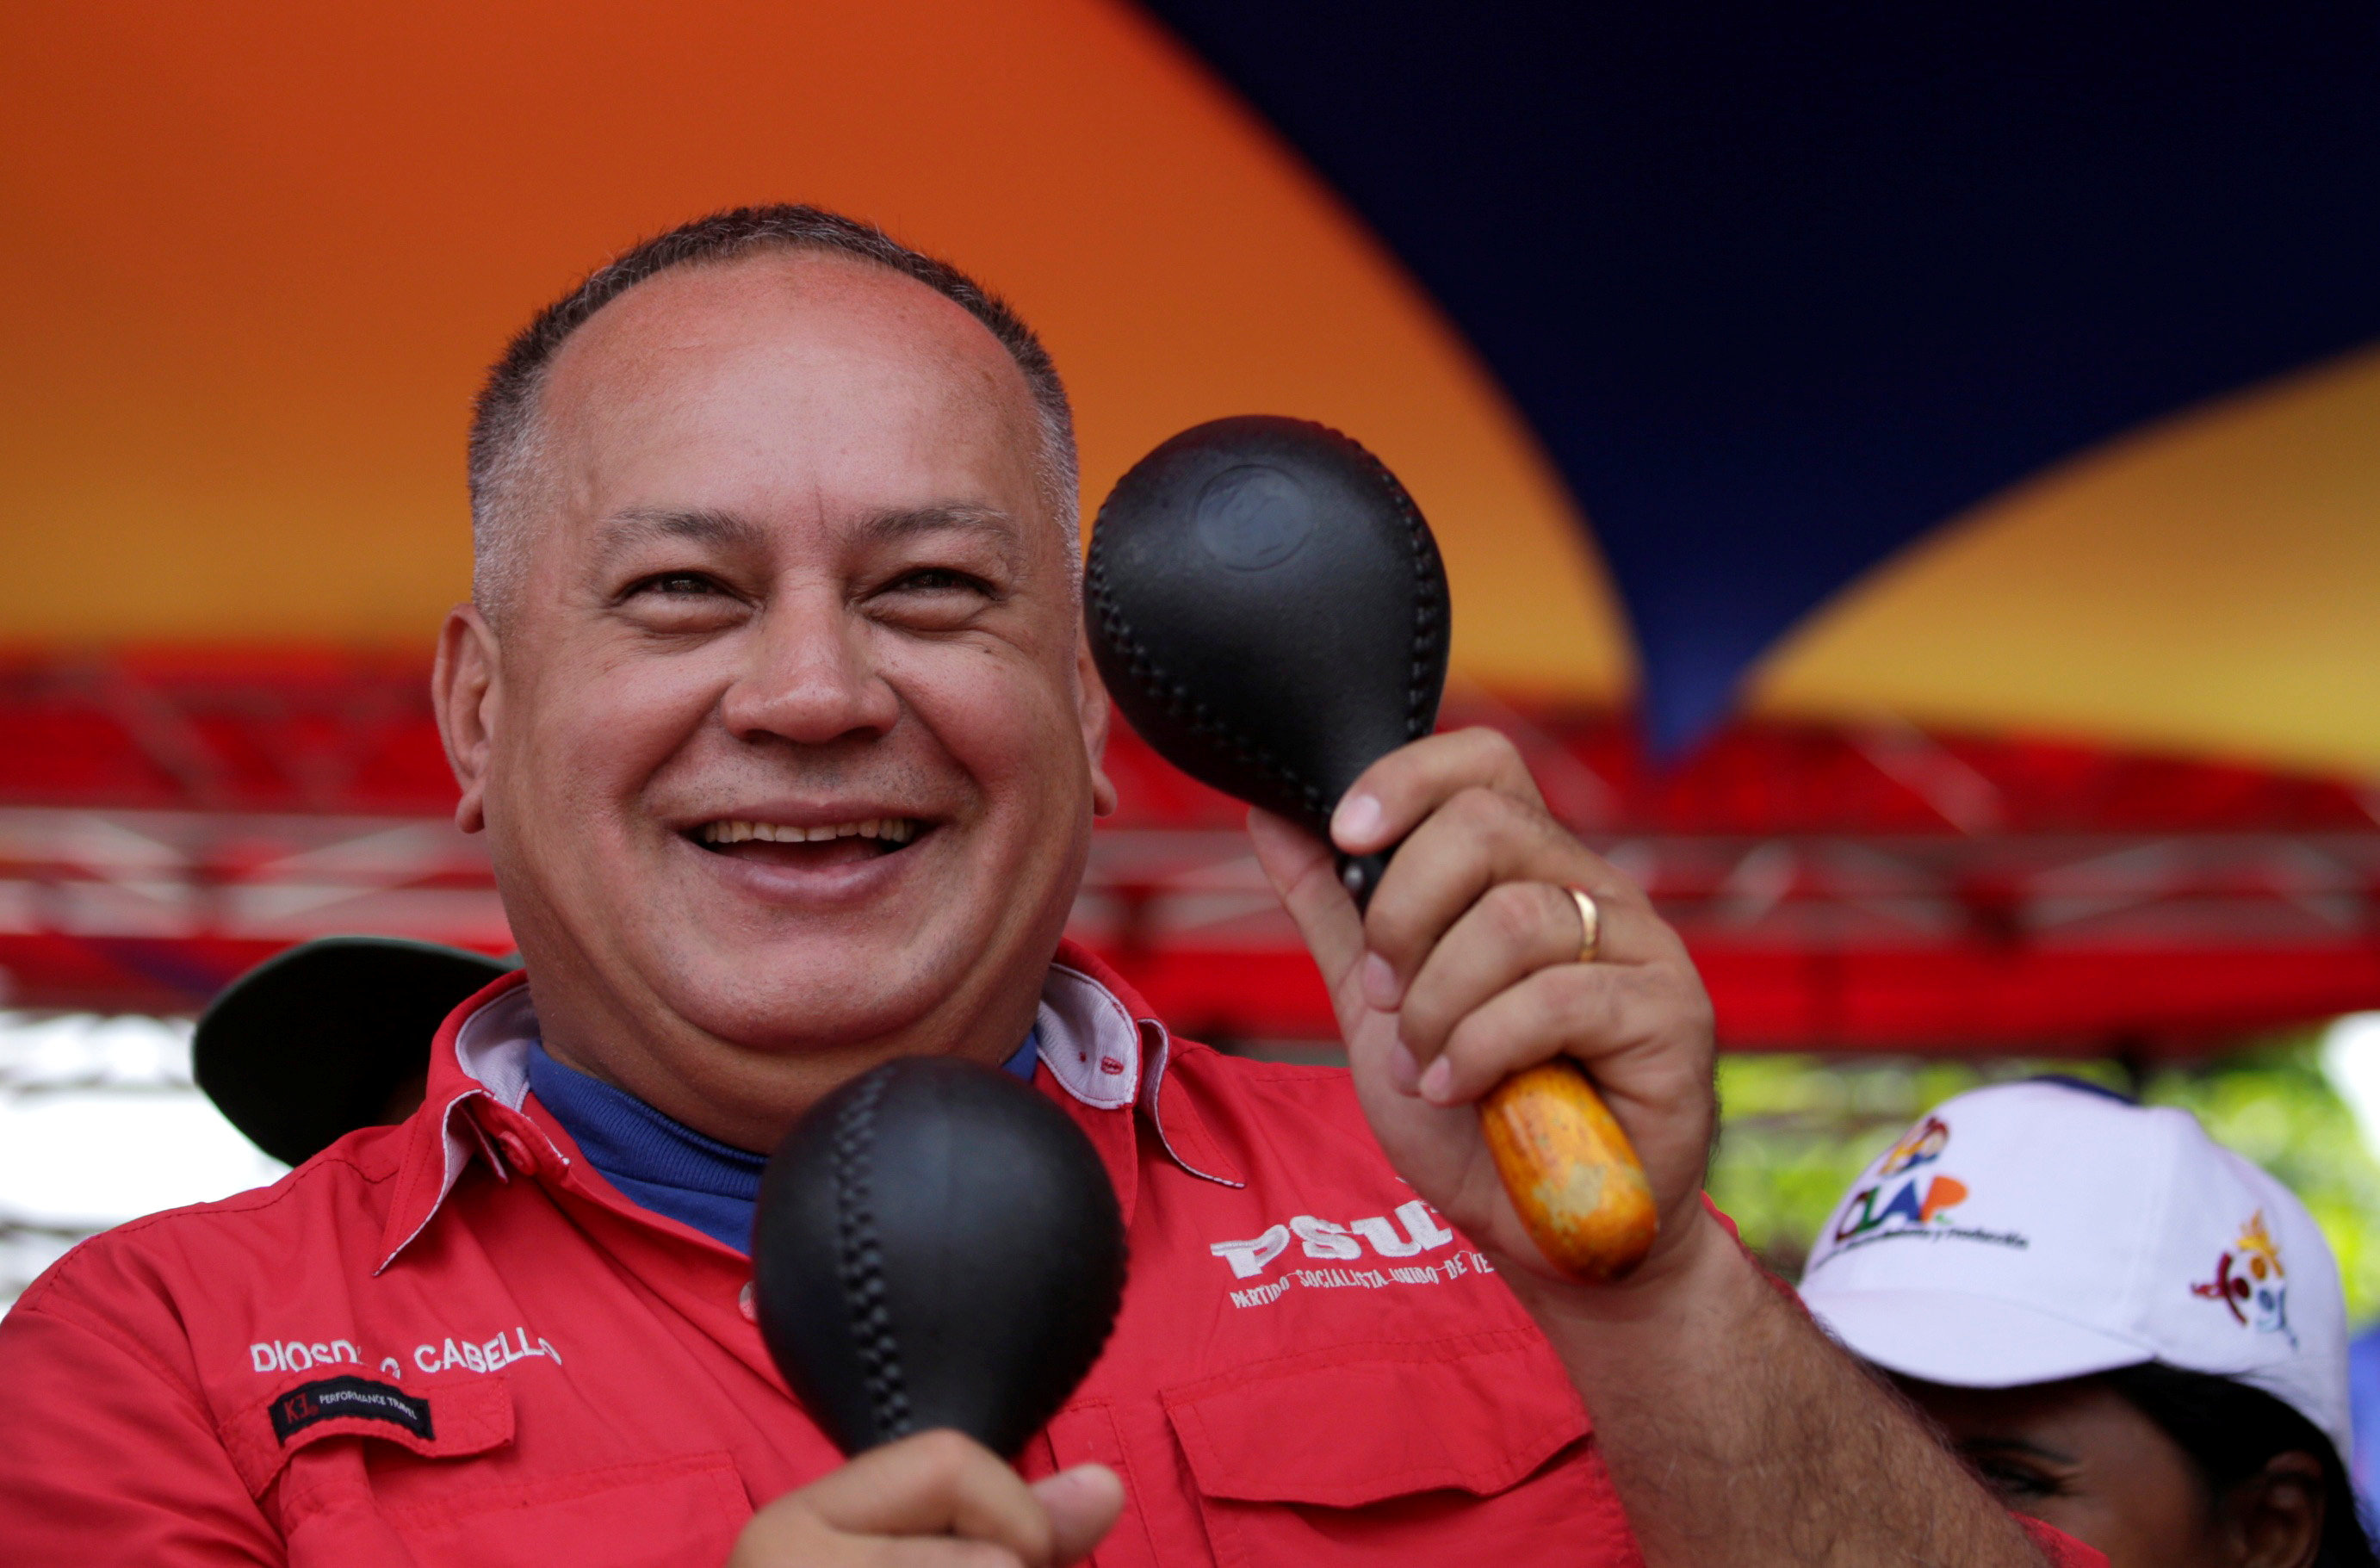 Deputy of Venezuela's United Socialist Party Diosdado Cabello plays the maracas during a rally of supporters of Venezuela's President Nicolas Maduro in support of the National Constituent Assembly in Caracas,Venezuela May 31, 2017. REUTERS/Marco Bello